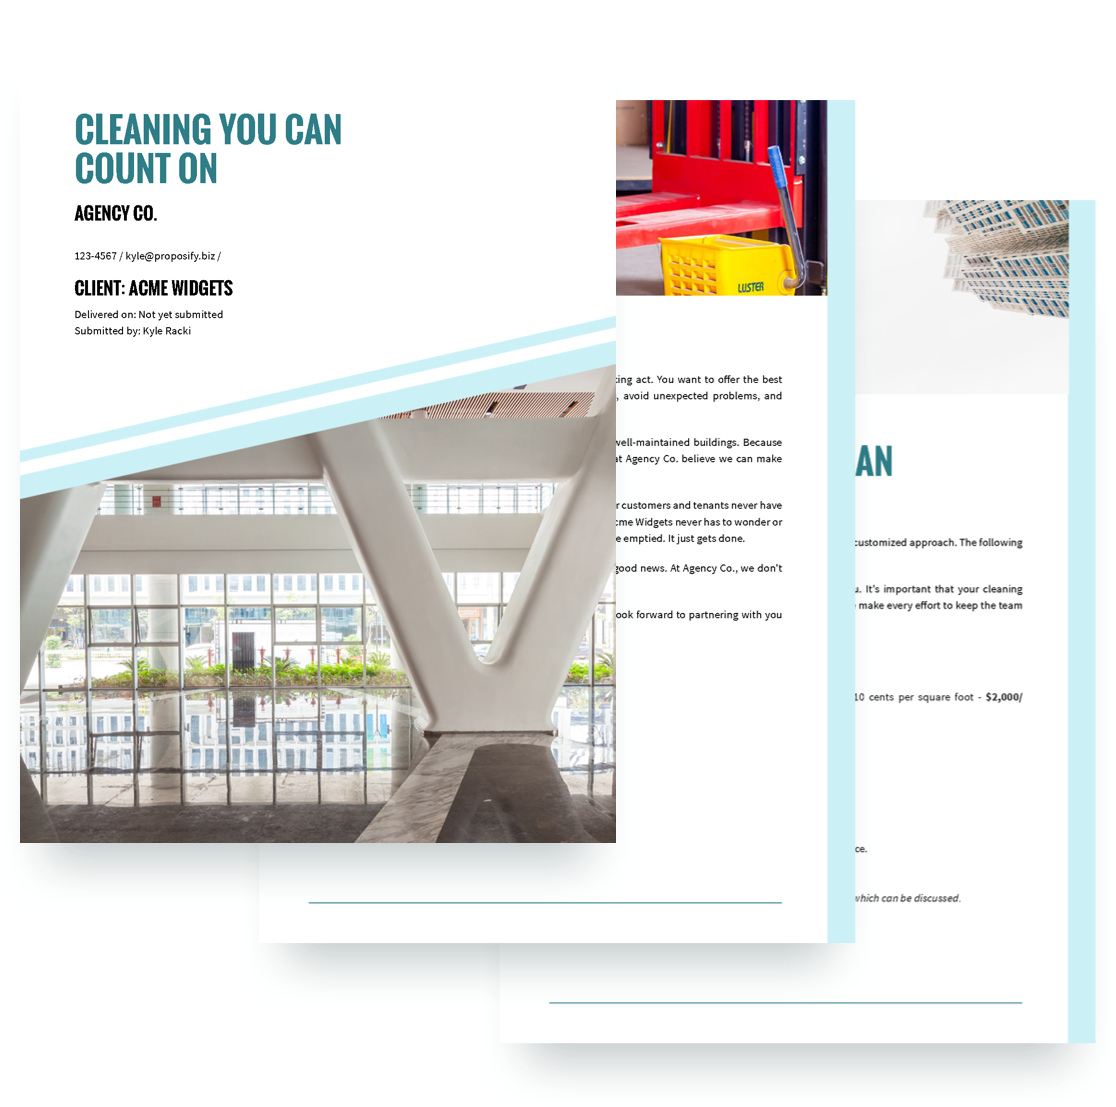 for a great example of an introduction letter check out this cleaning services proposal template created by proposify